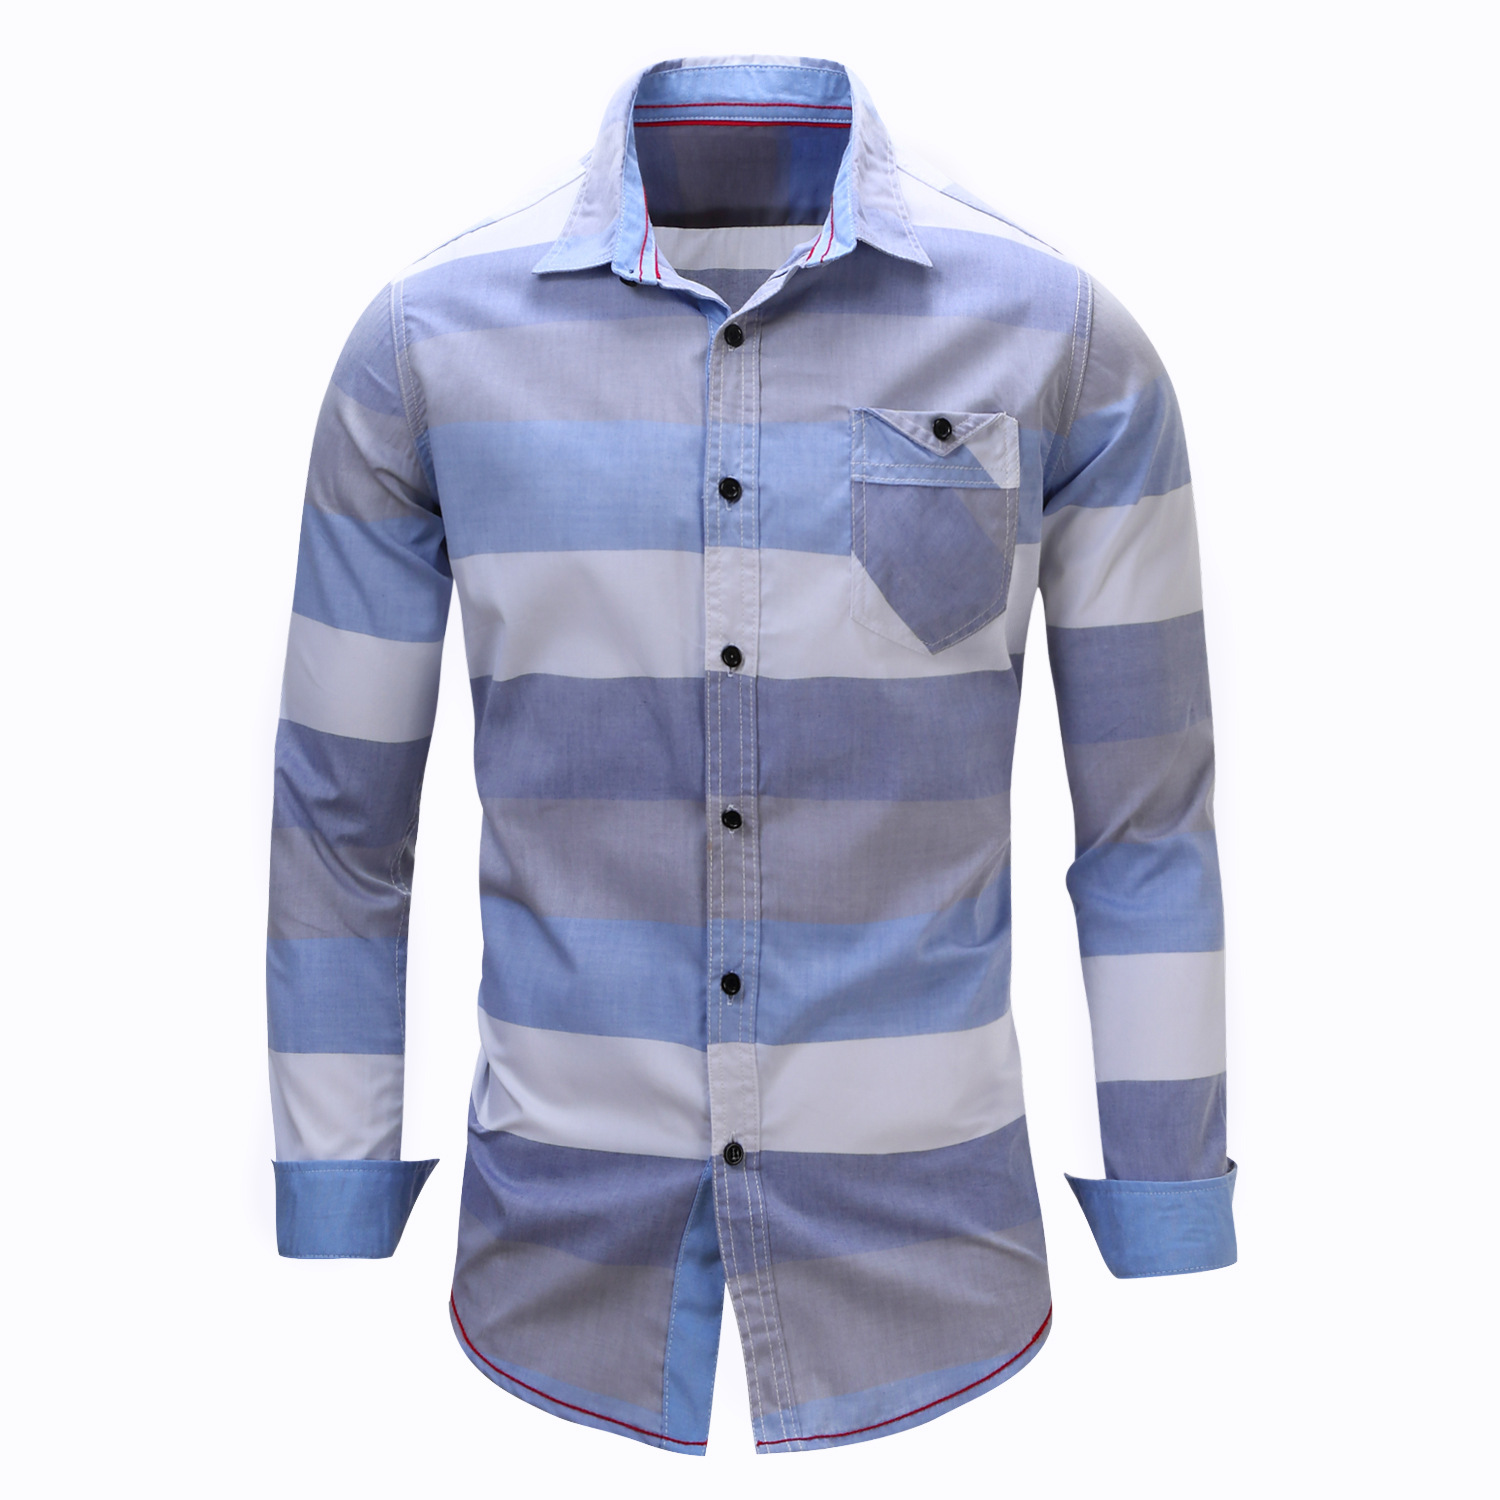 3 Colors Fredd Marshall Mens Dress Shirt Long Sleeve Striped White